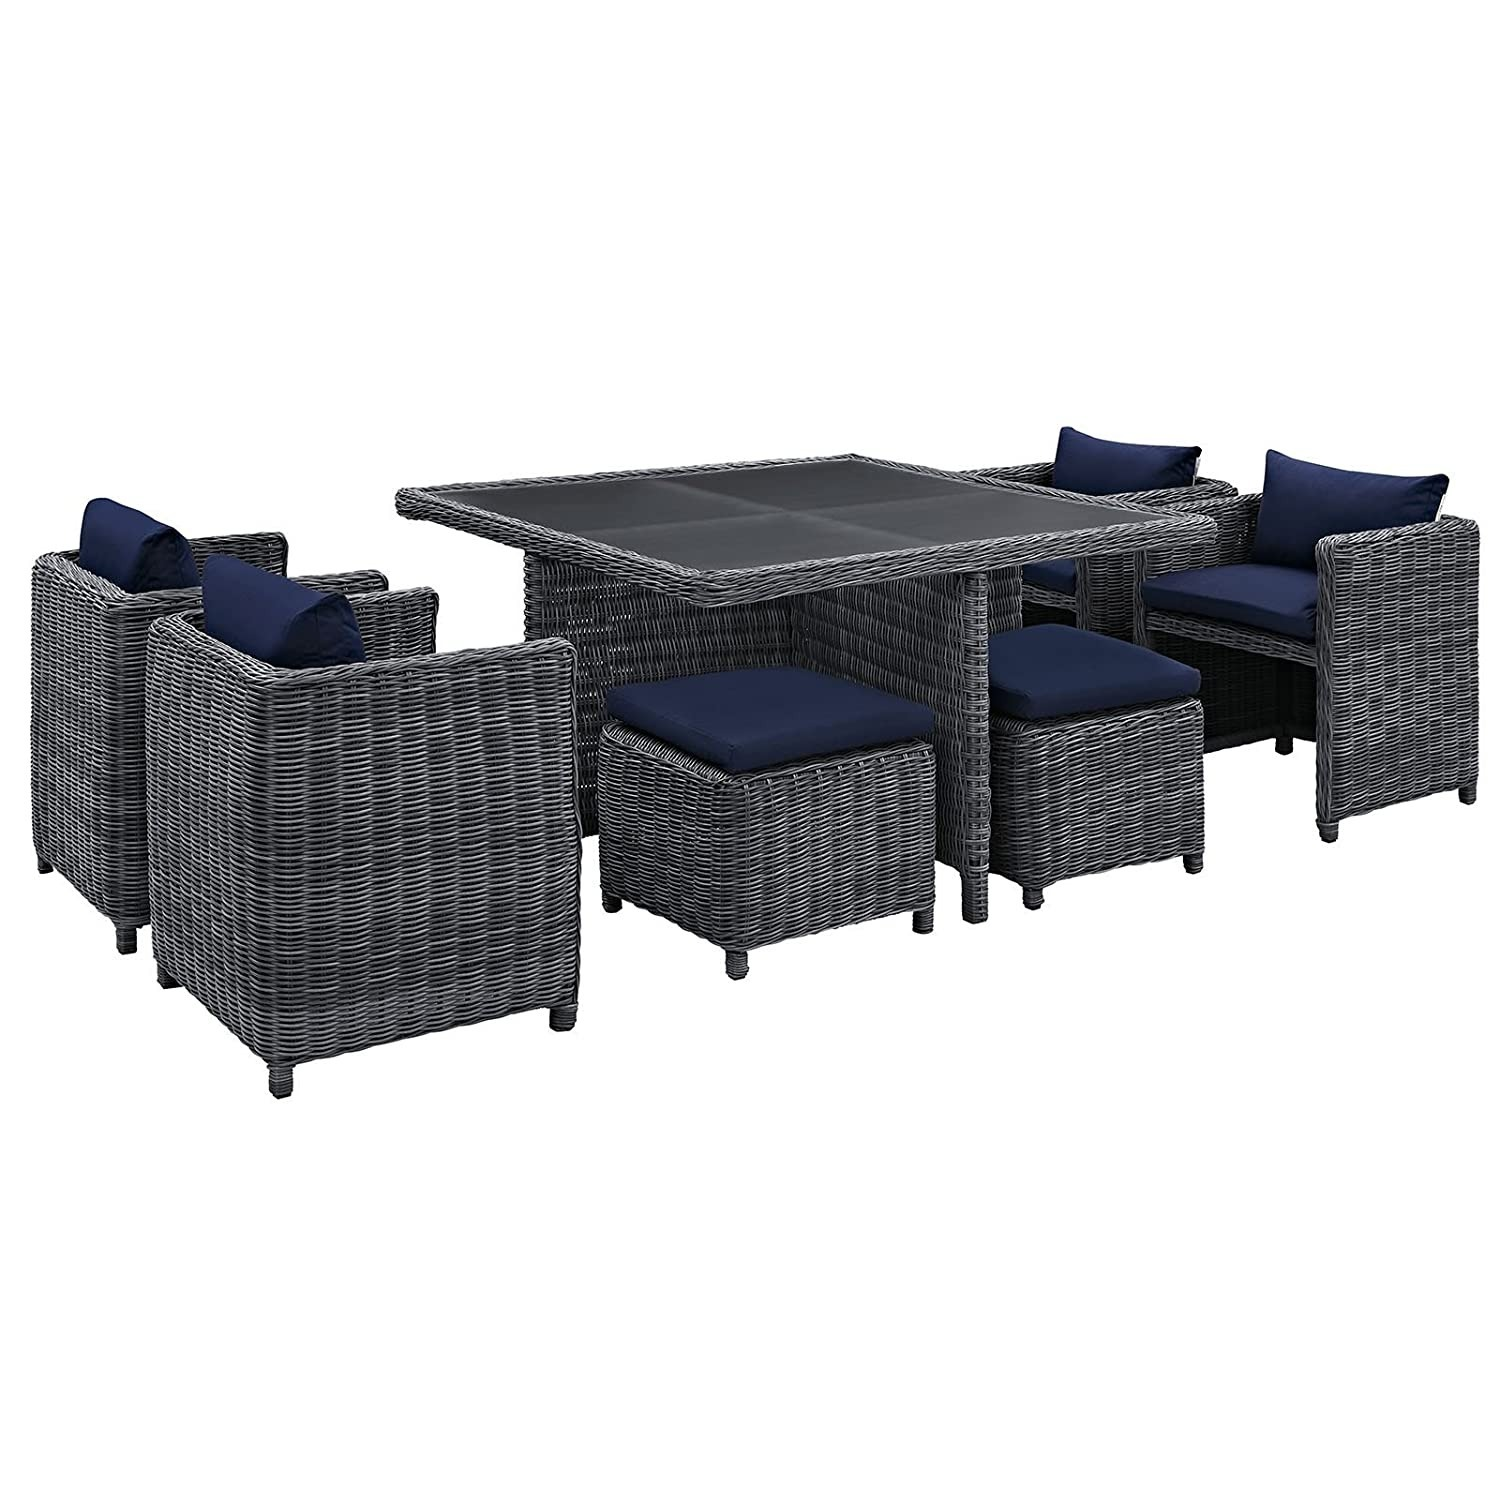 Modern 9-Piece Dining Set In Gray Navy Finish - image-1